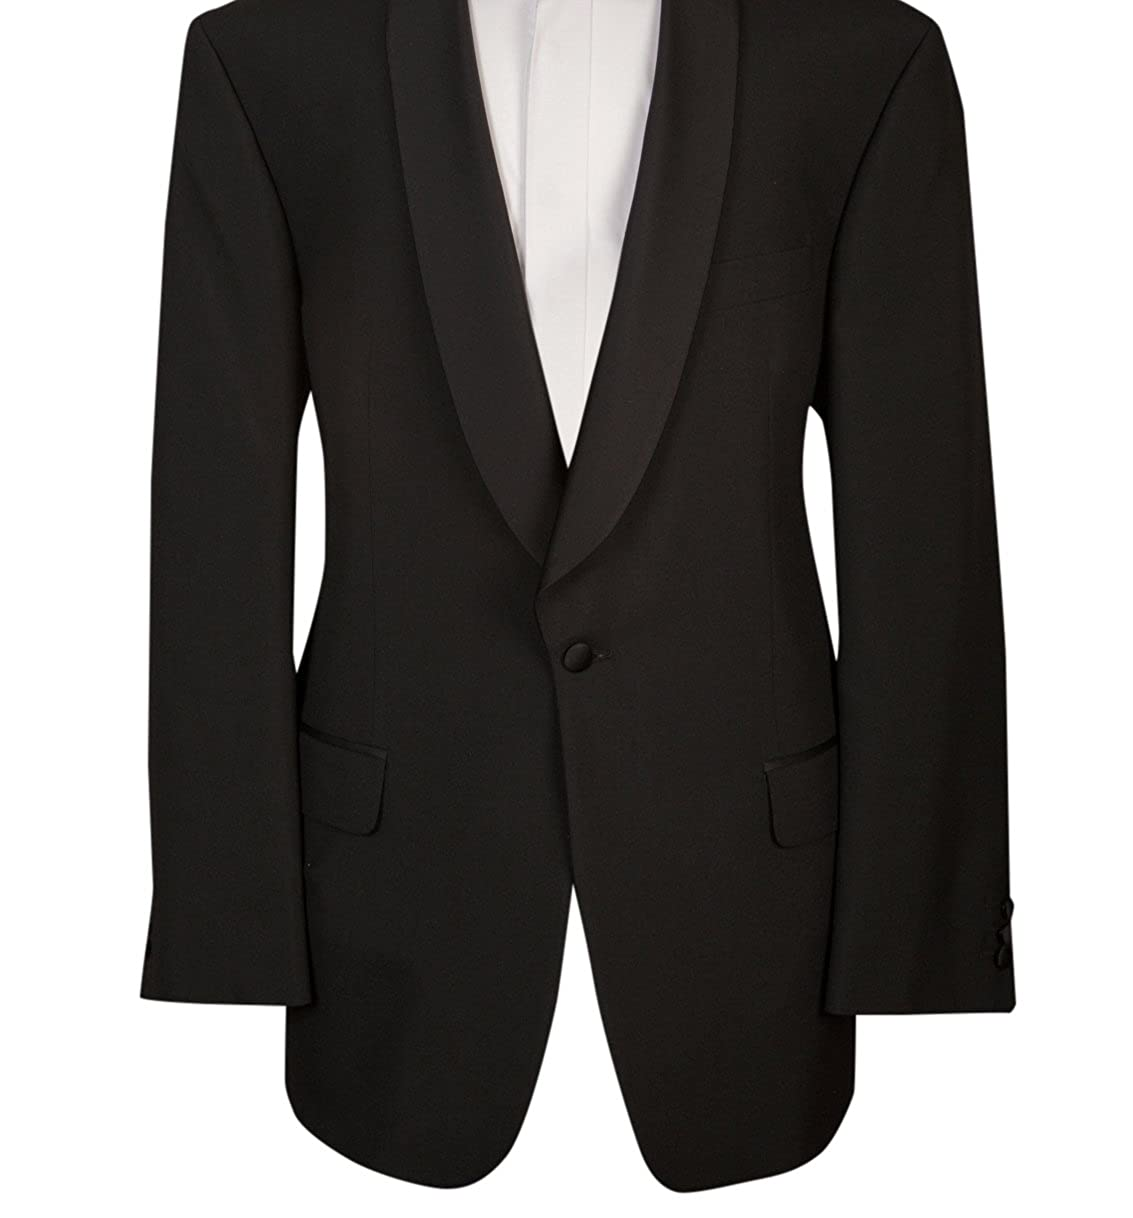 Black Shawl Collar Tuxedo Tux Dinner Evening Blazer Jacket